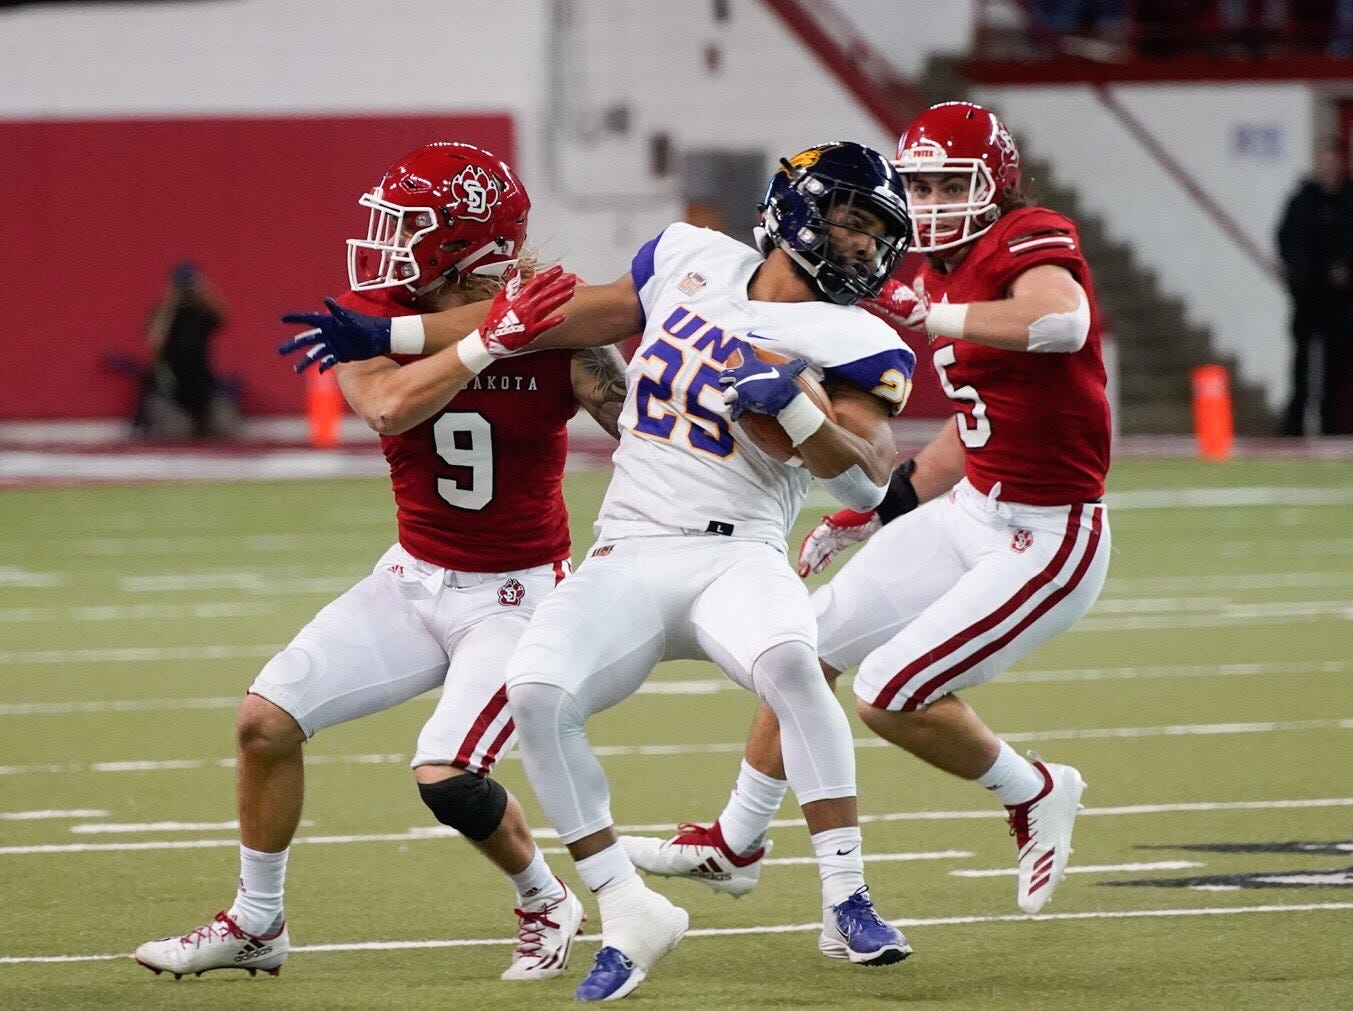 University of South Dakota defenders Andrew Gray (9) and Brian Woodward attempt to tackle UNI running back Trevor Allen on Saturday in Vermillion.